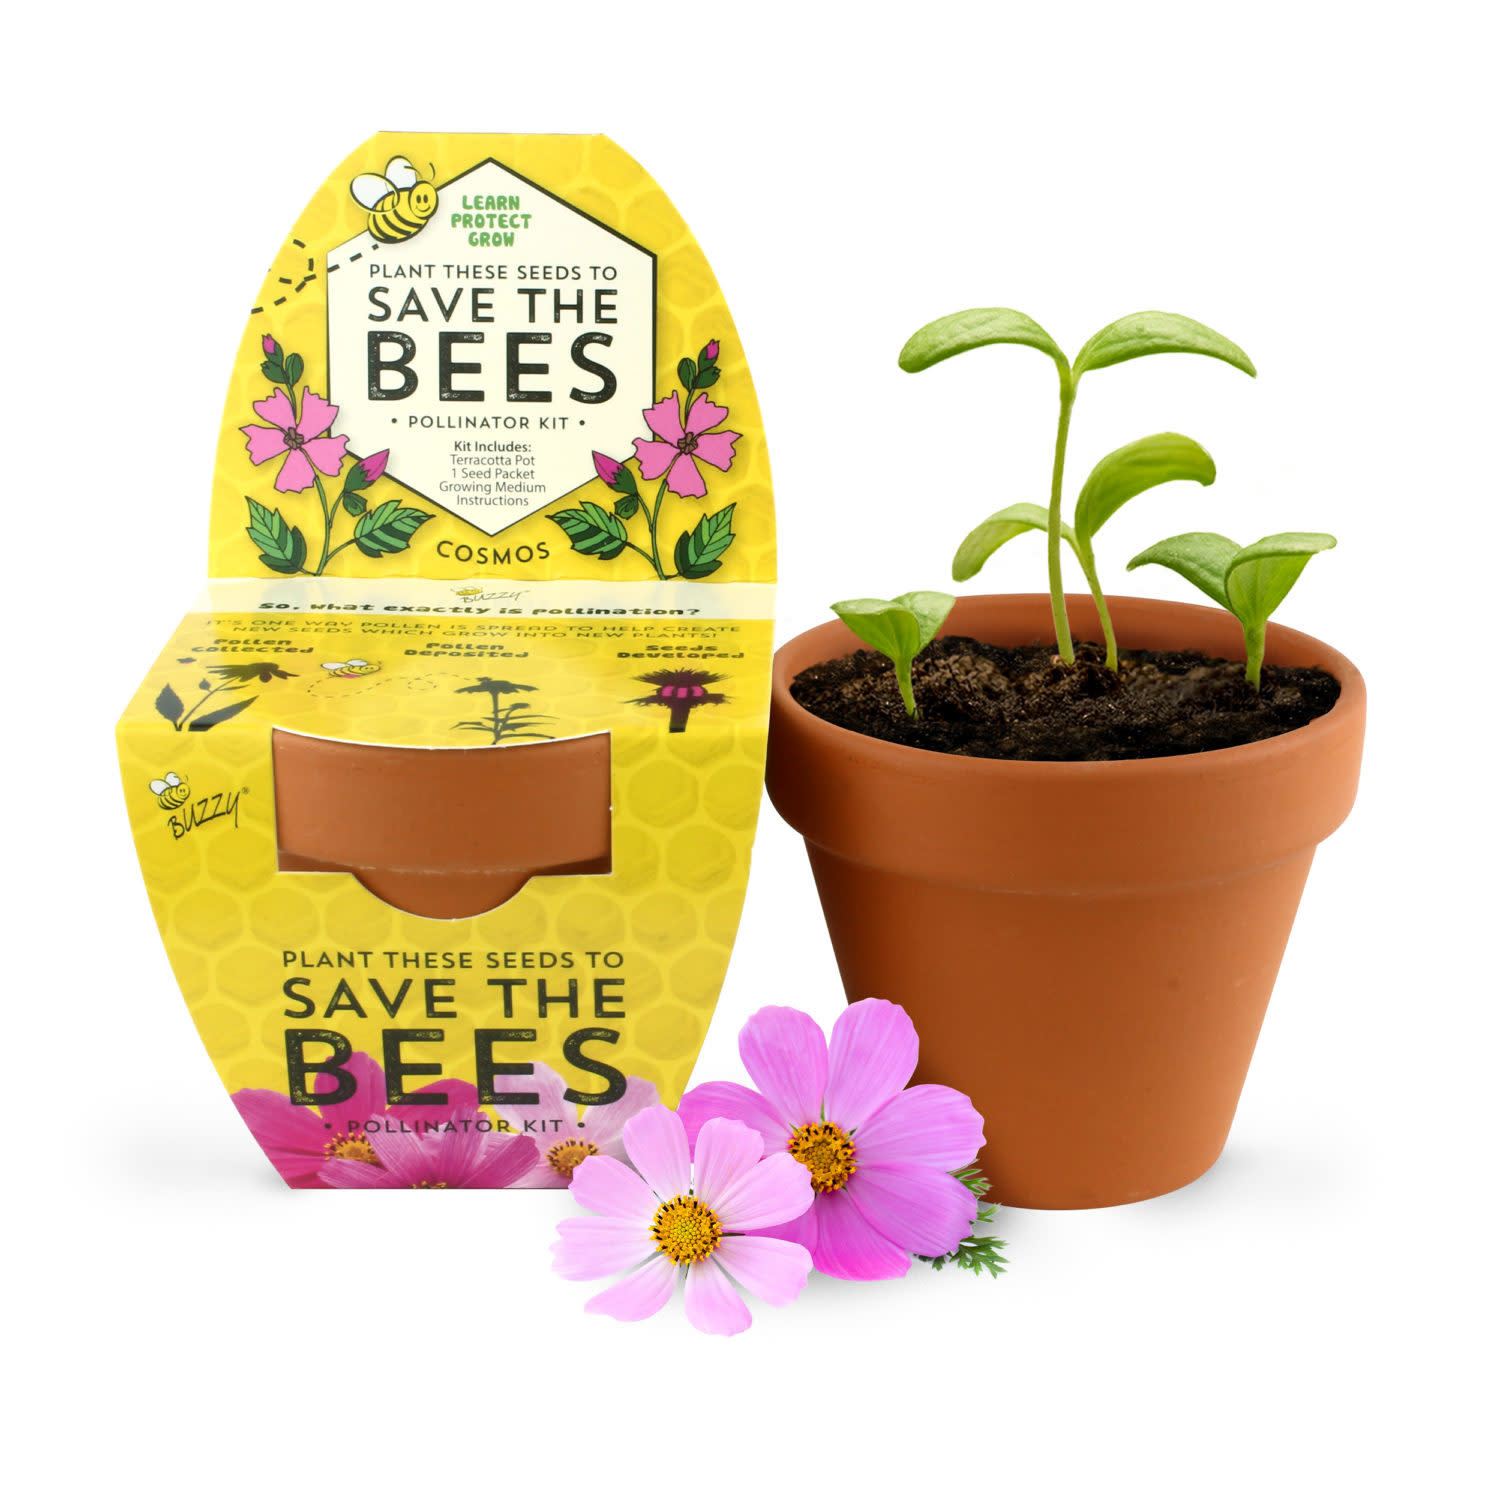 Save The Bees Cosmos Kit by Buzzy